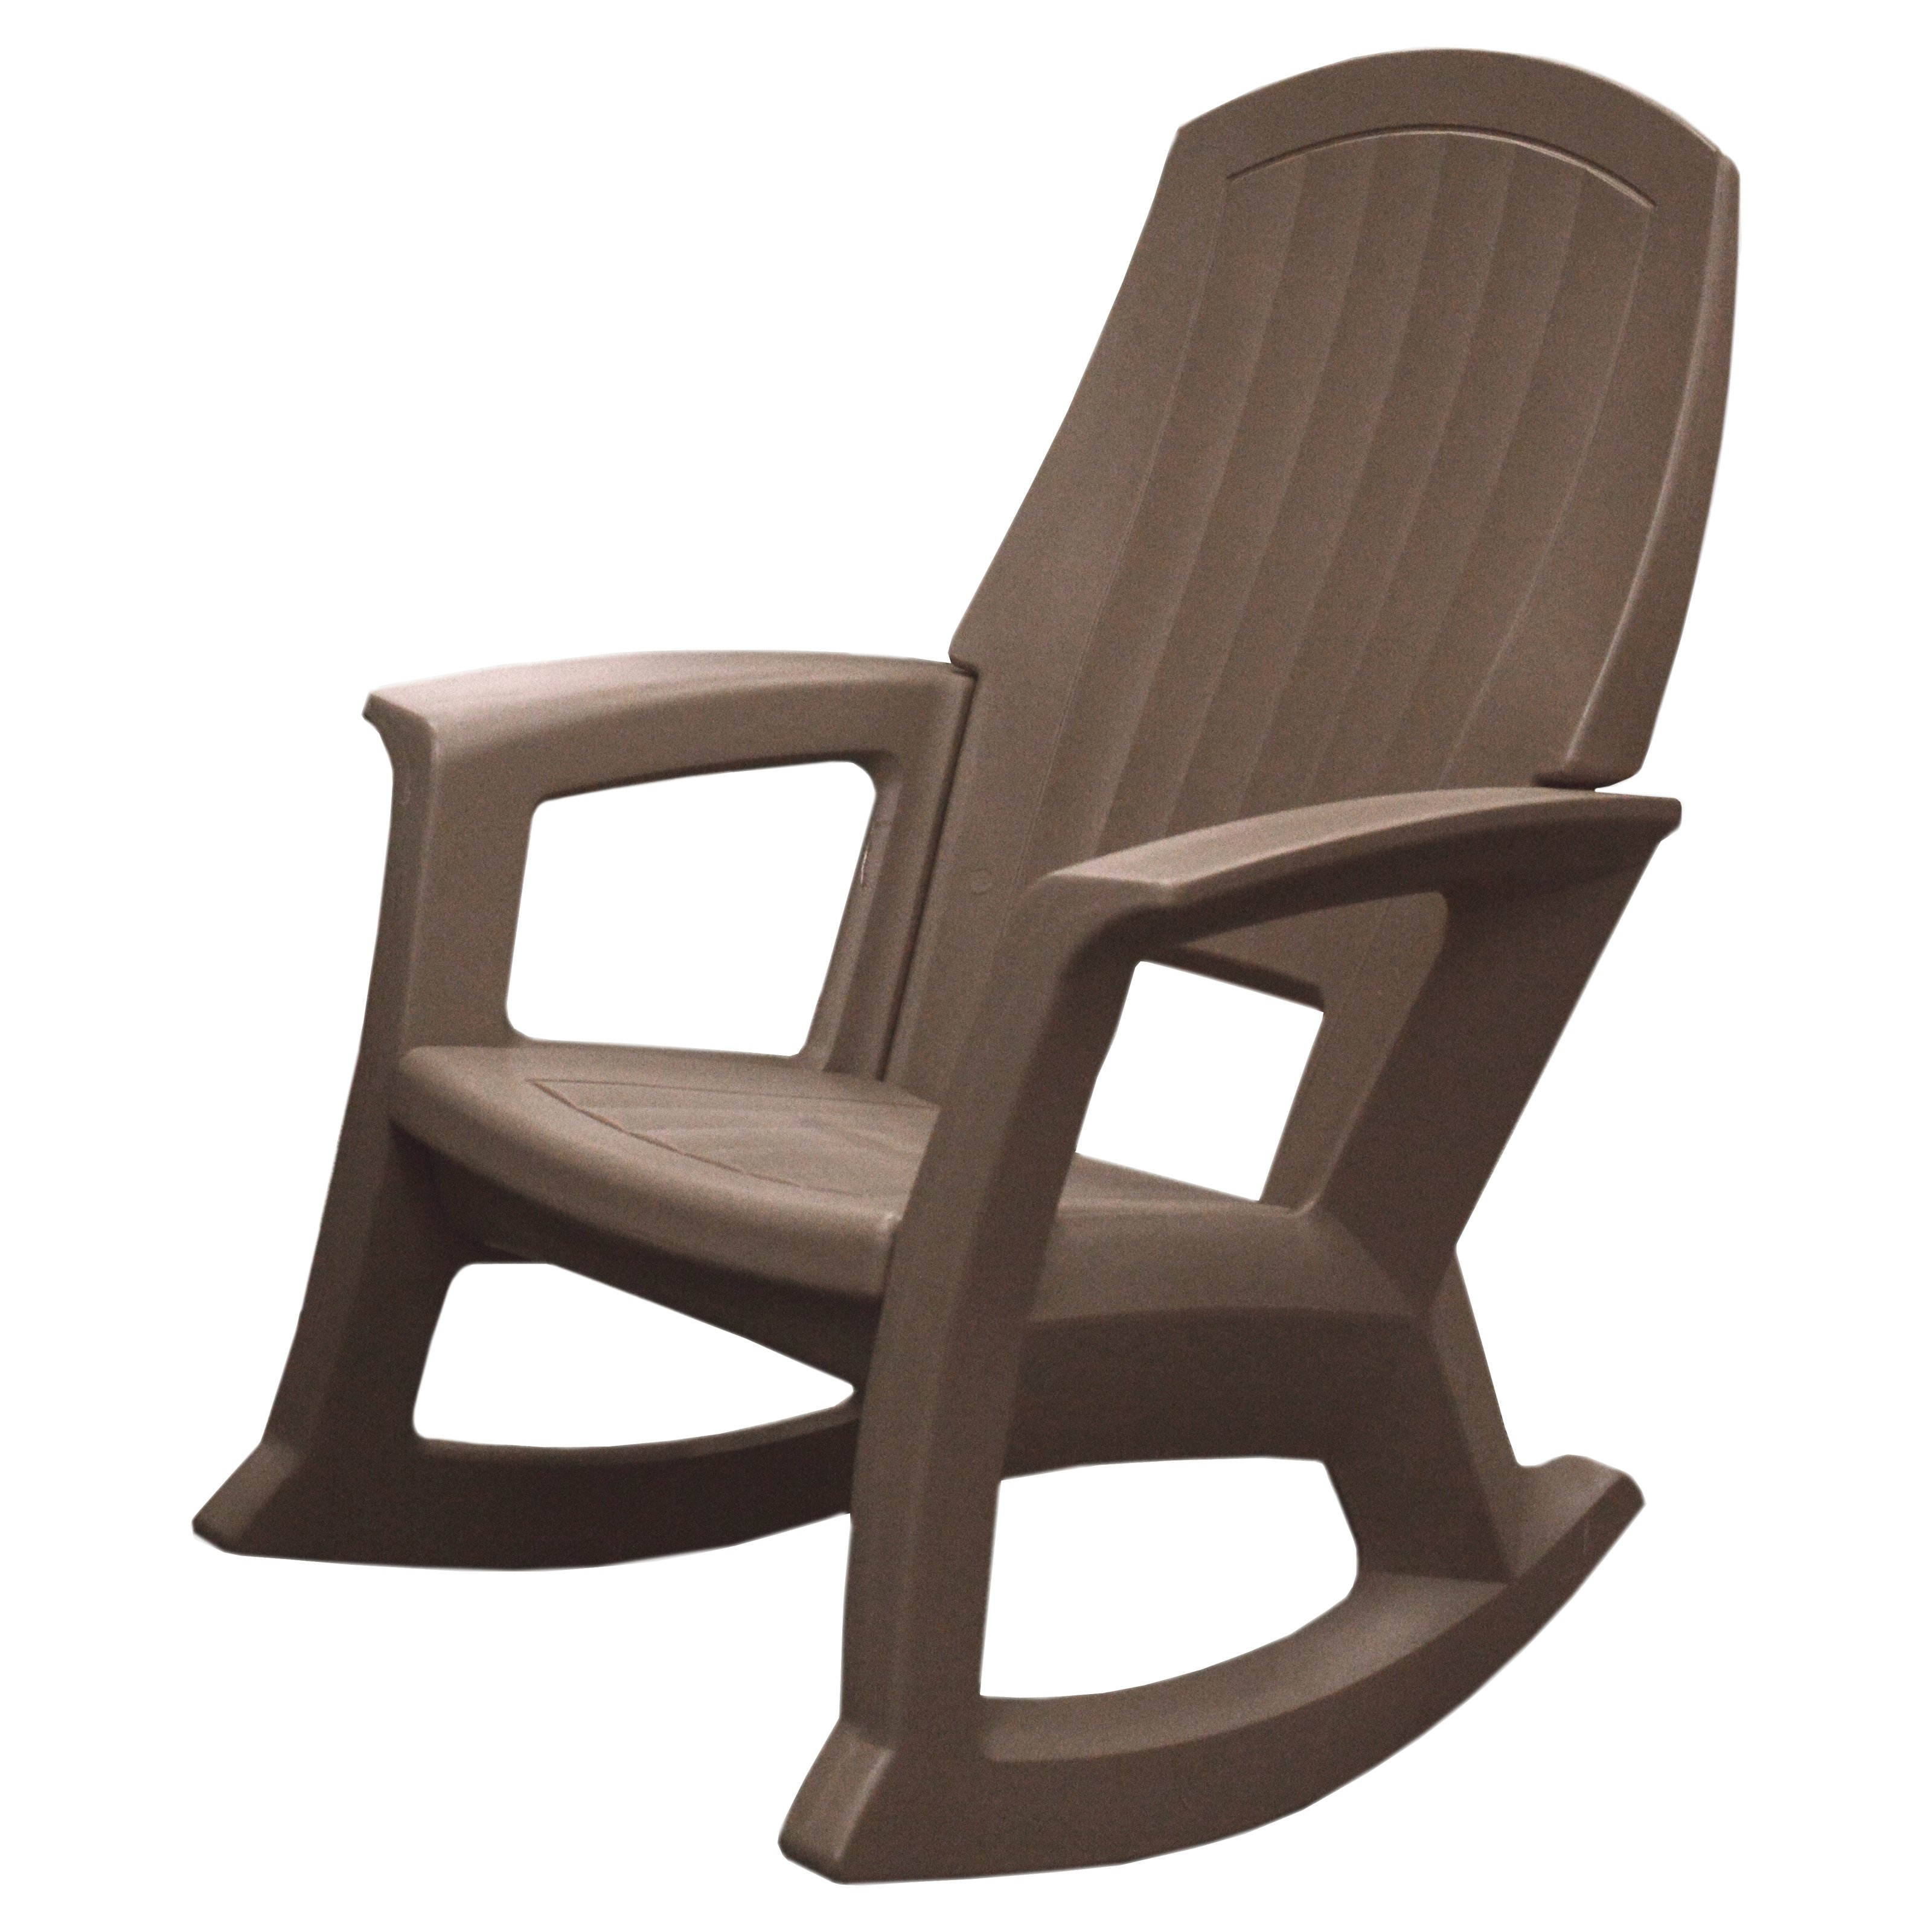 Photos of Semco Recycled Plastic Rocking Chair - Walmart.com plastic rocking chair